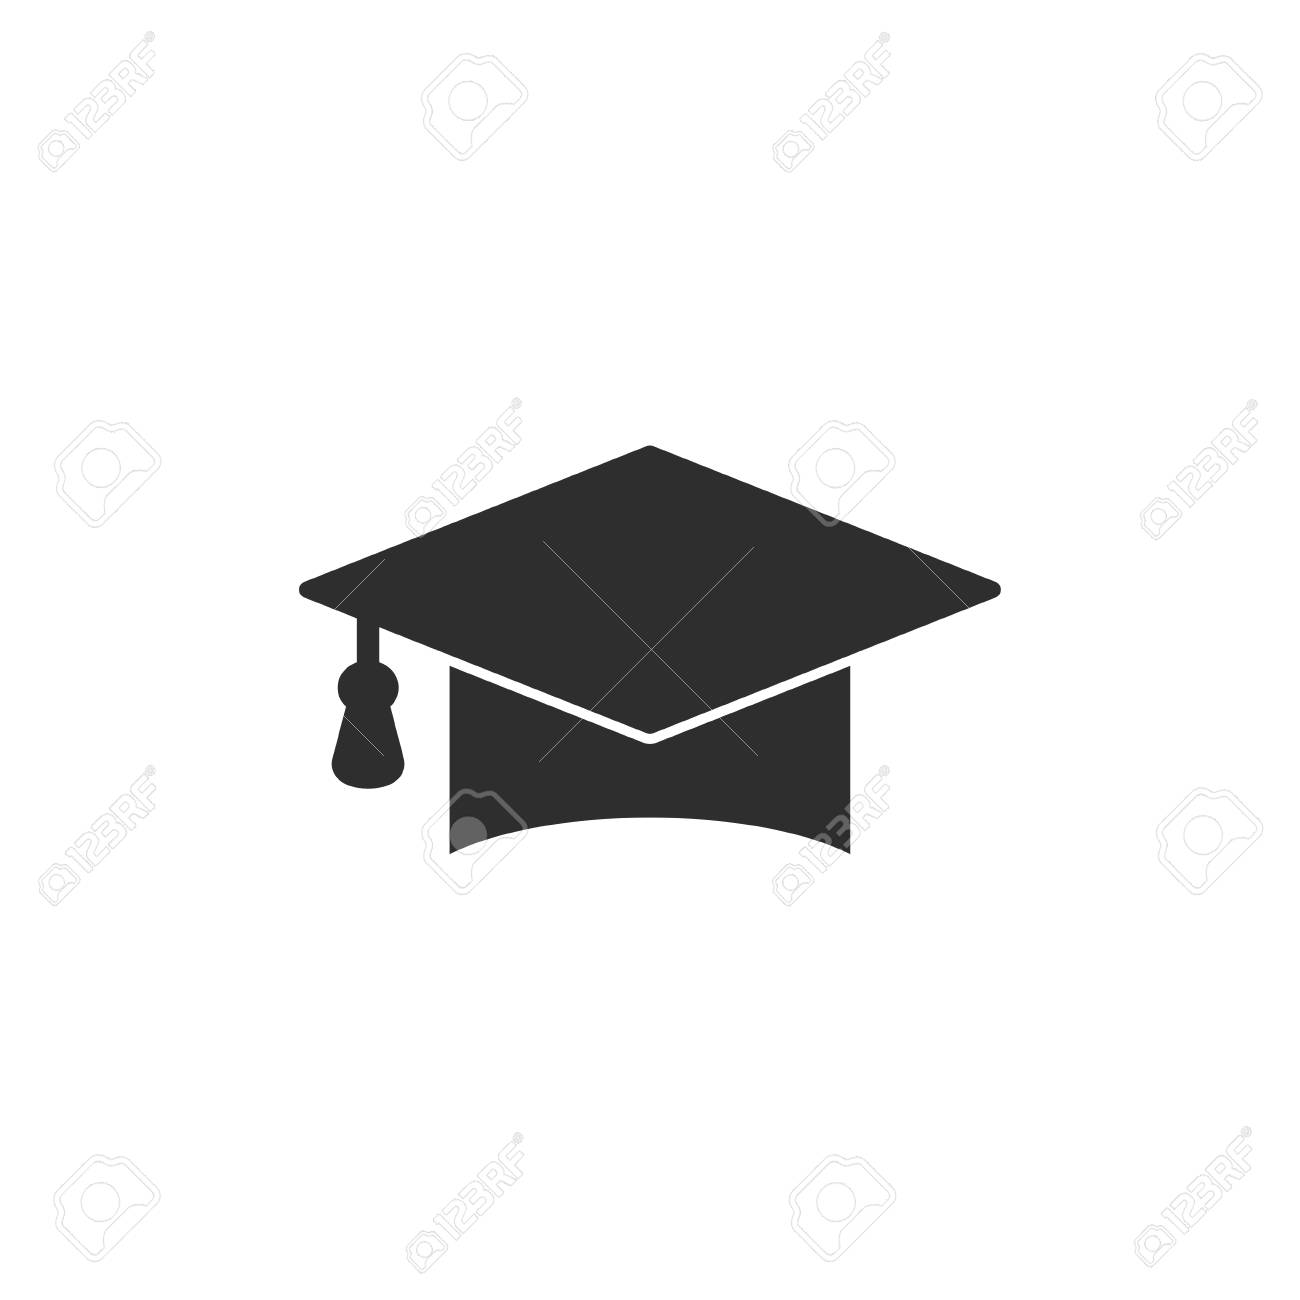 855260040d8 Graduation cap vector icon. Black illustration isolated on white background  for graphic and web design